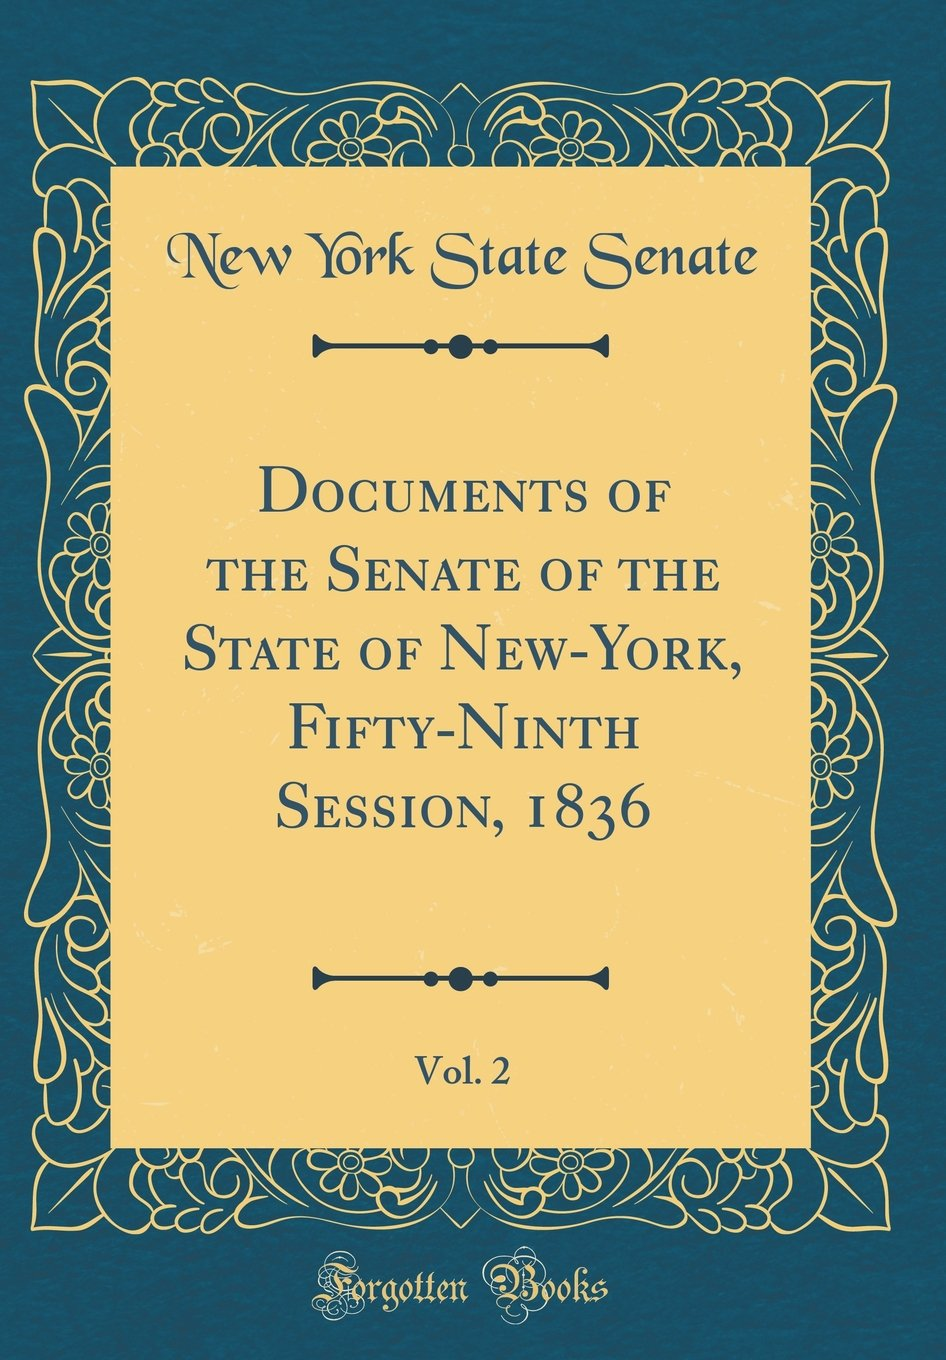 Documents of the Senate of the State of New-York, Fifty-Ninth Session, 1836, Vol. 2 (Classic Reprint) pdf